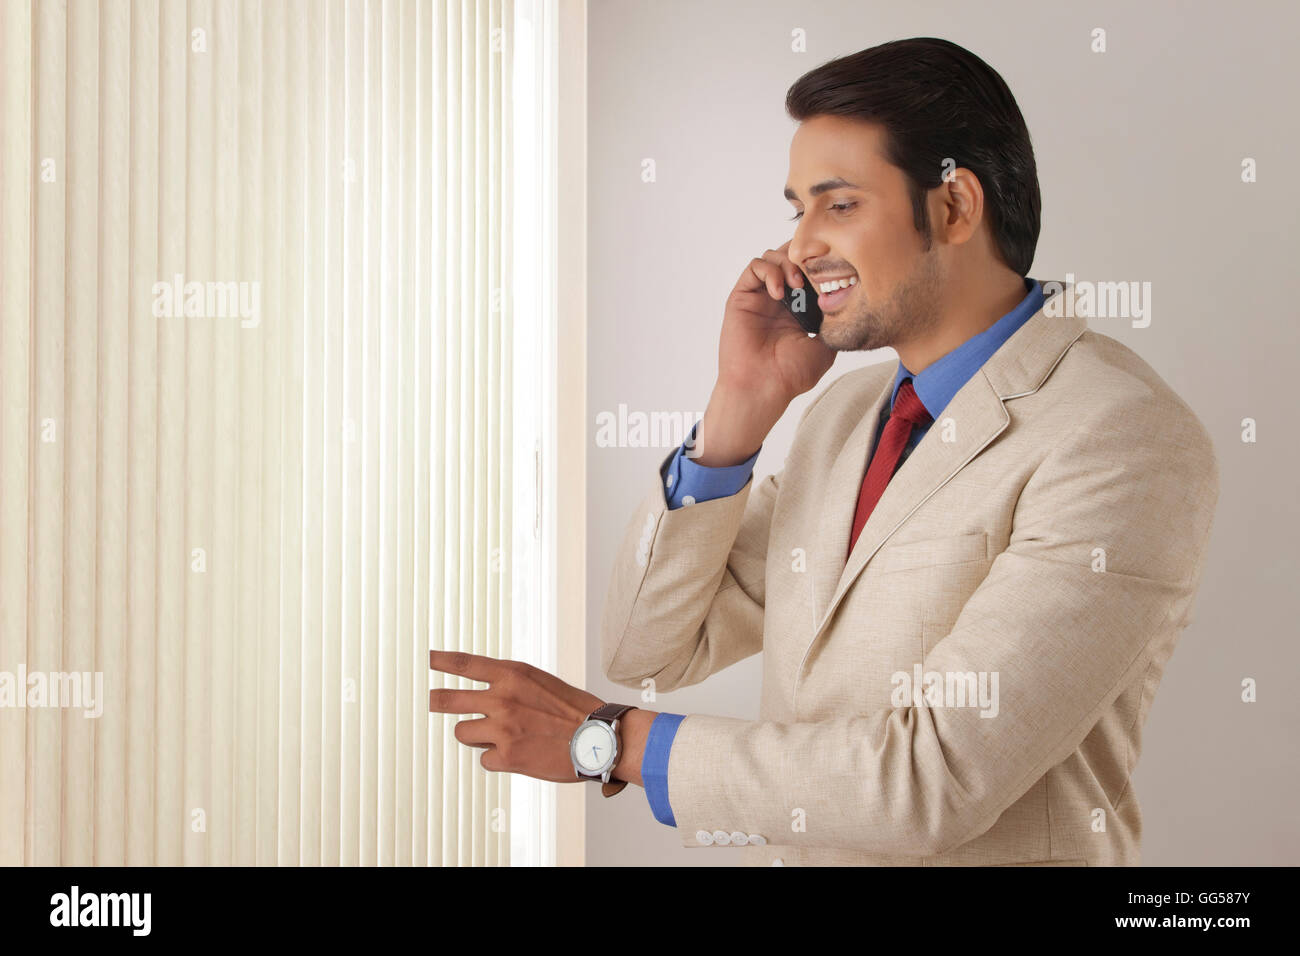 Young businessman on call while looking through window blinds - Stock Image